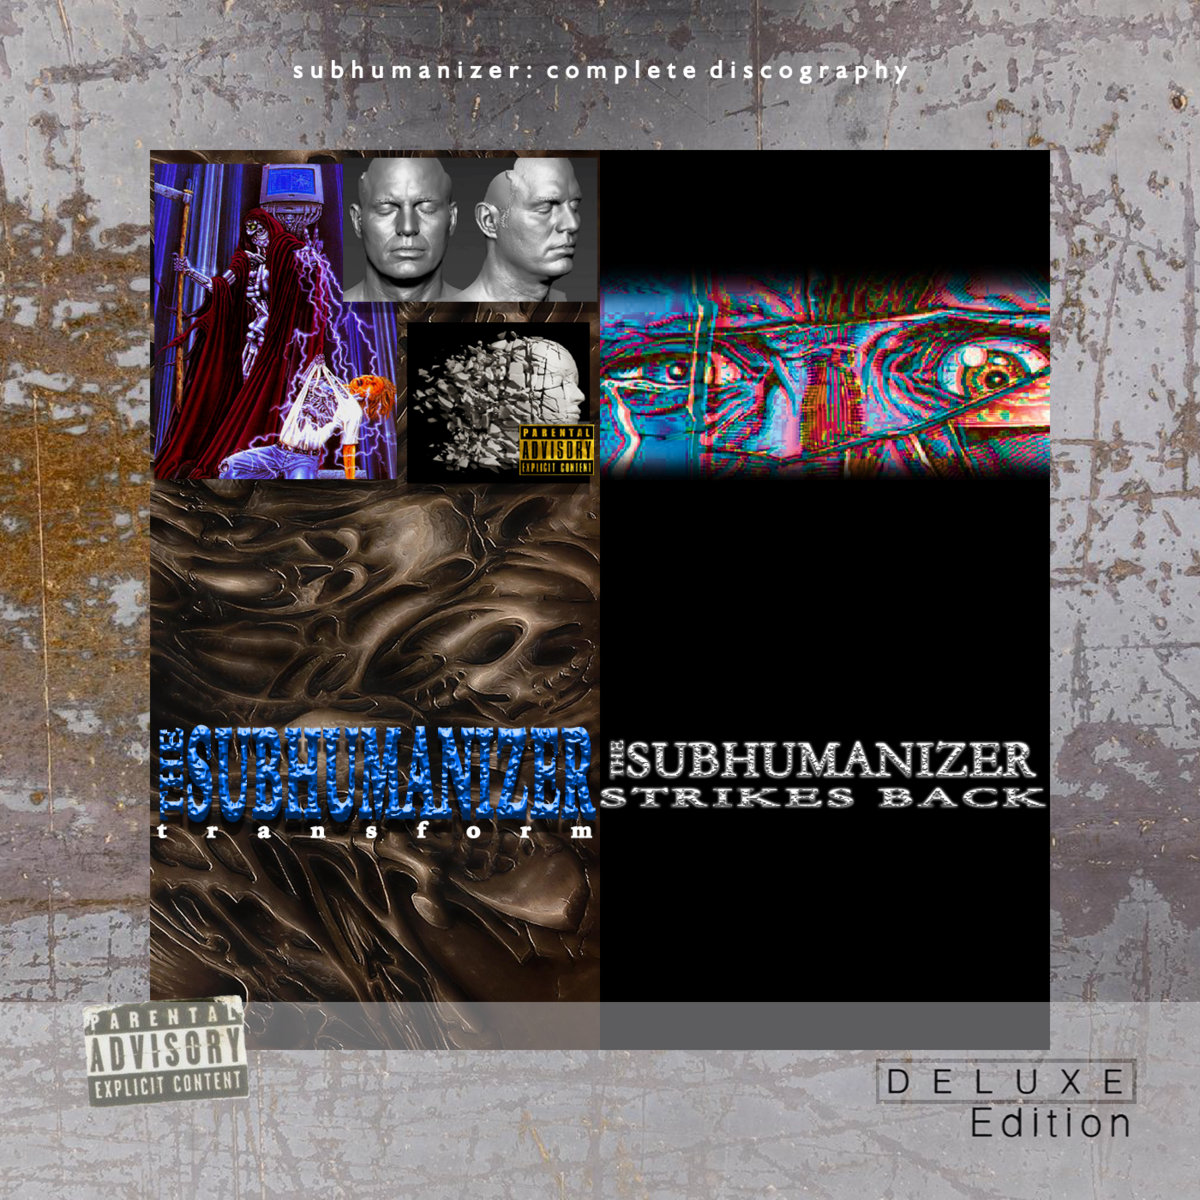 COMPLETE DISCOGRAPHY